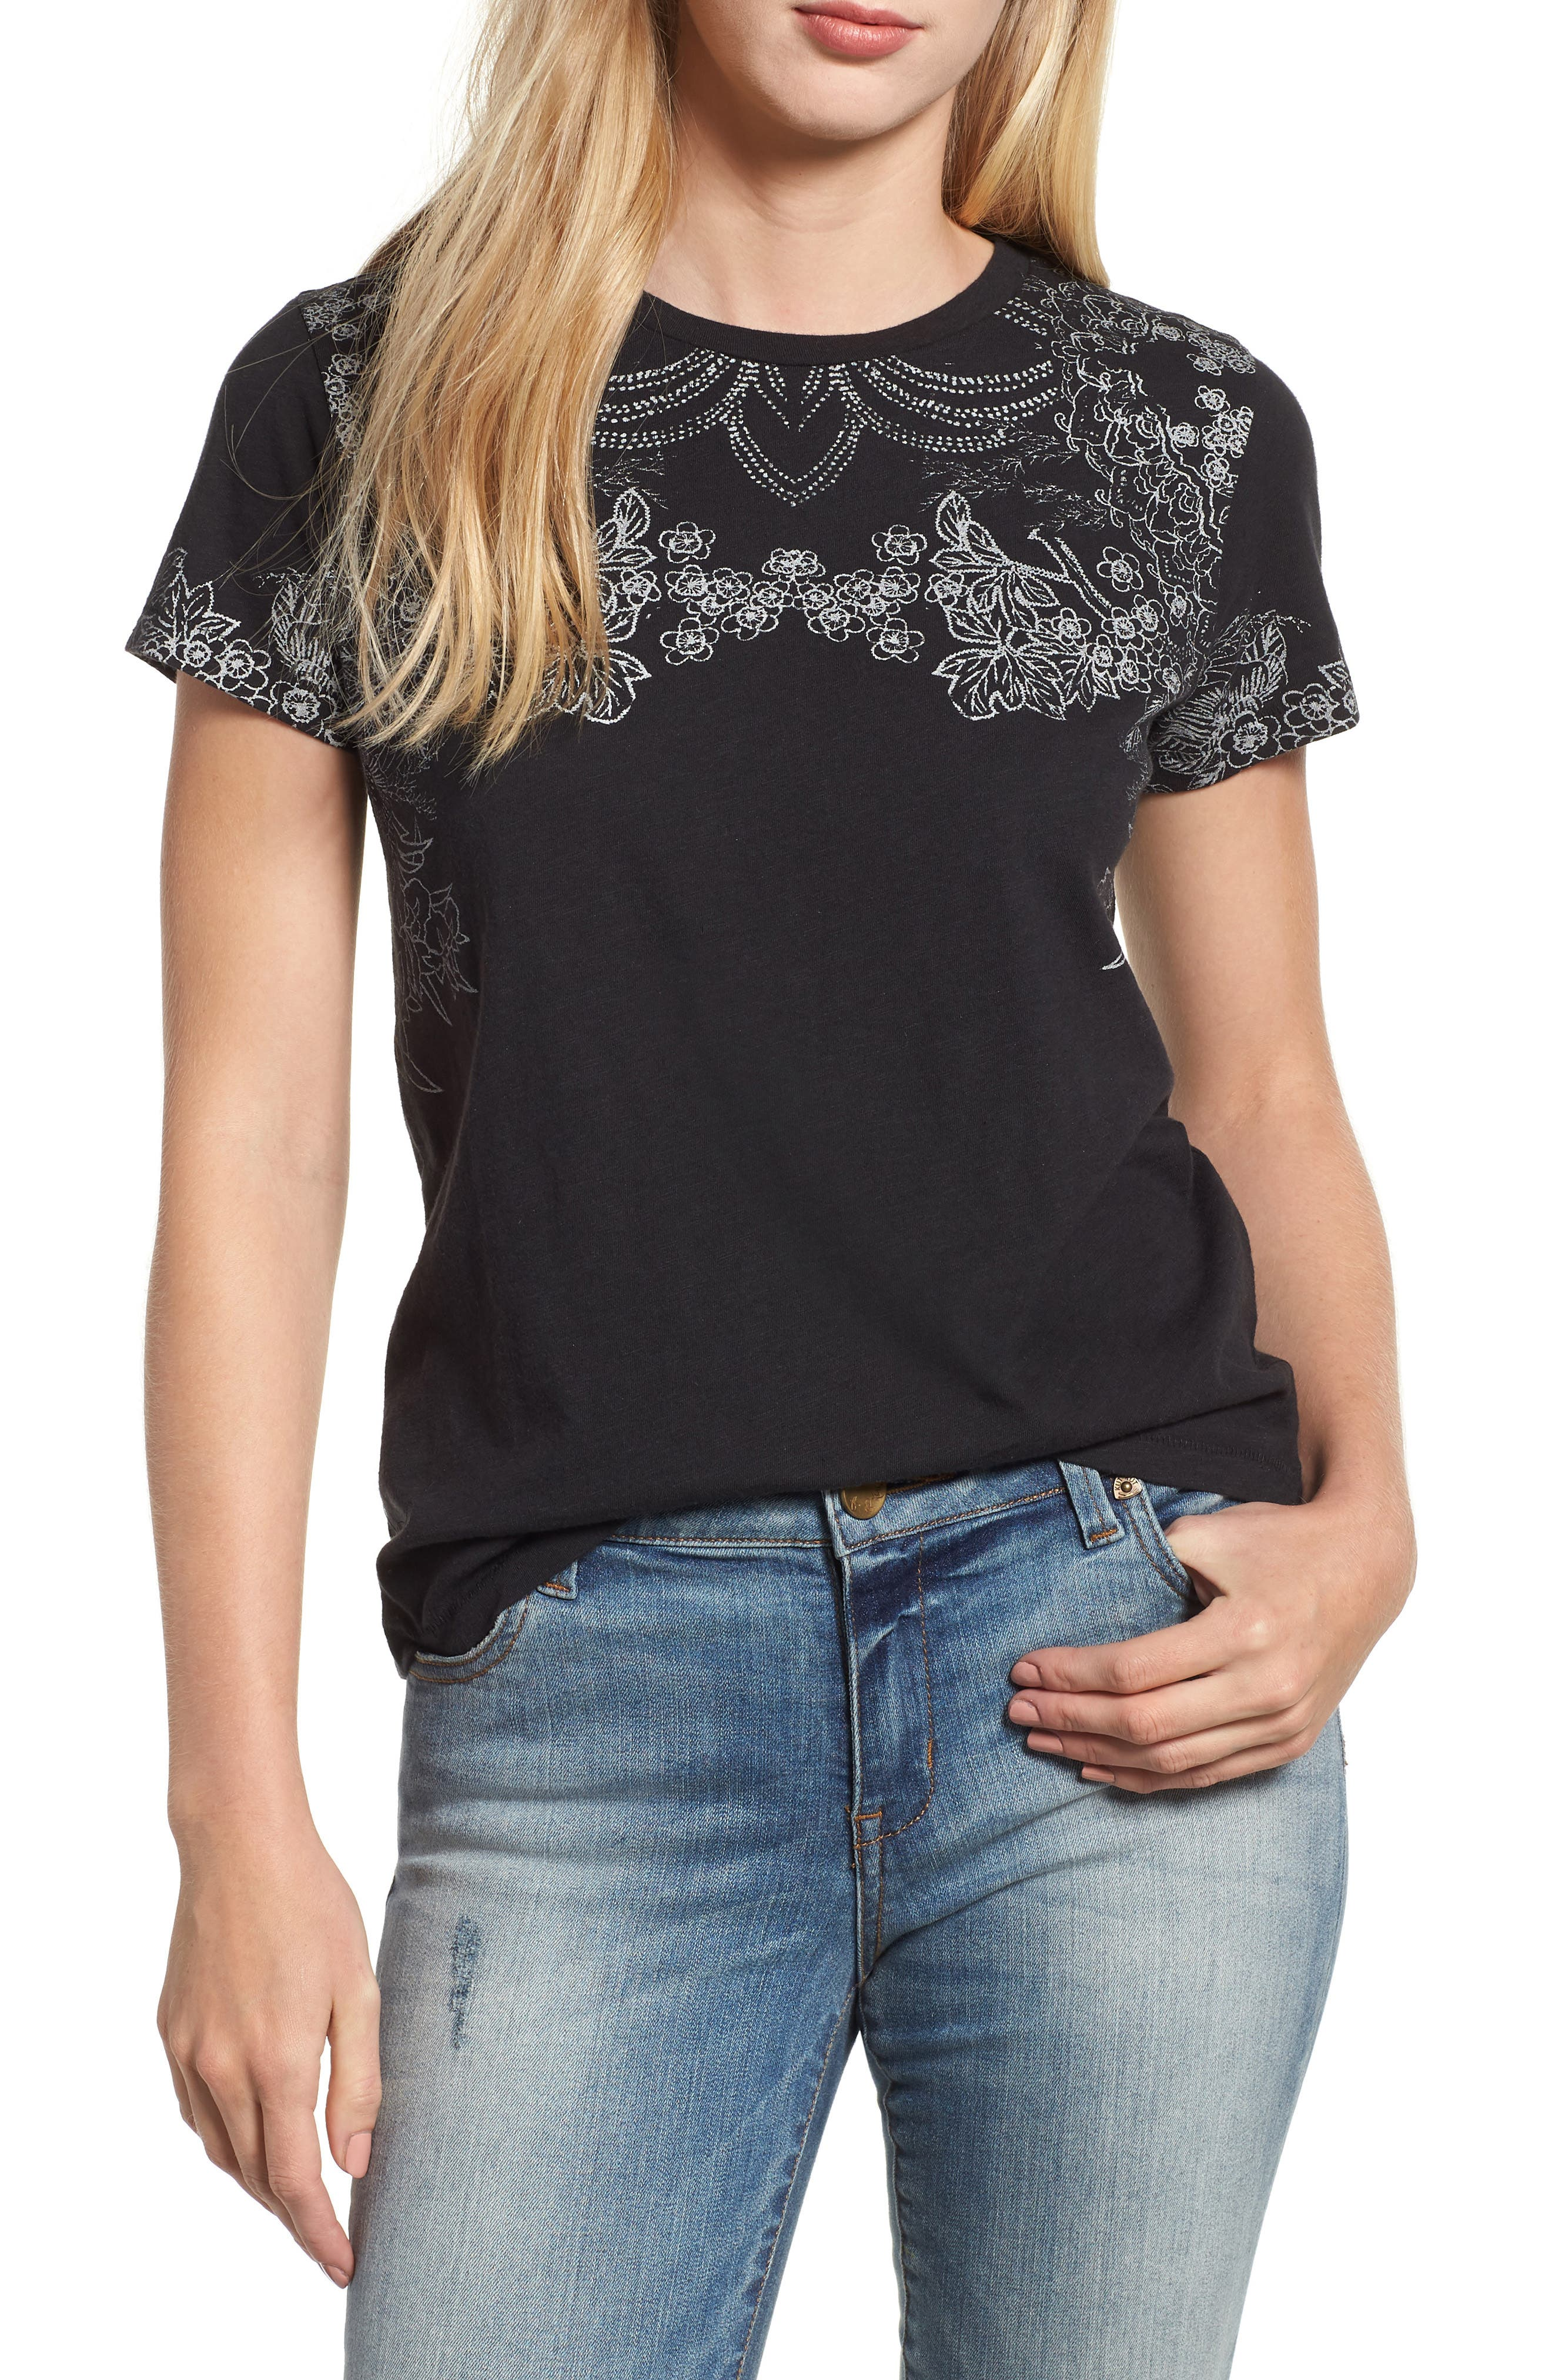 LUCKY BRAND,                             Embroidered Tee,                             Main thumbnail 1, color,                             001